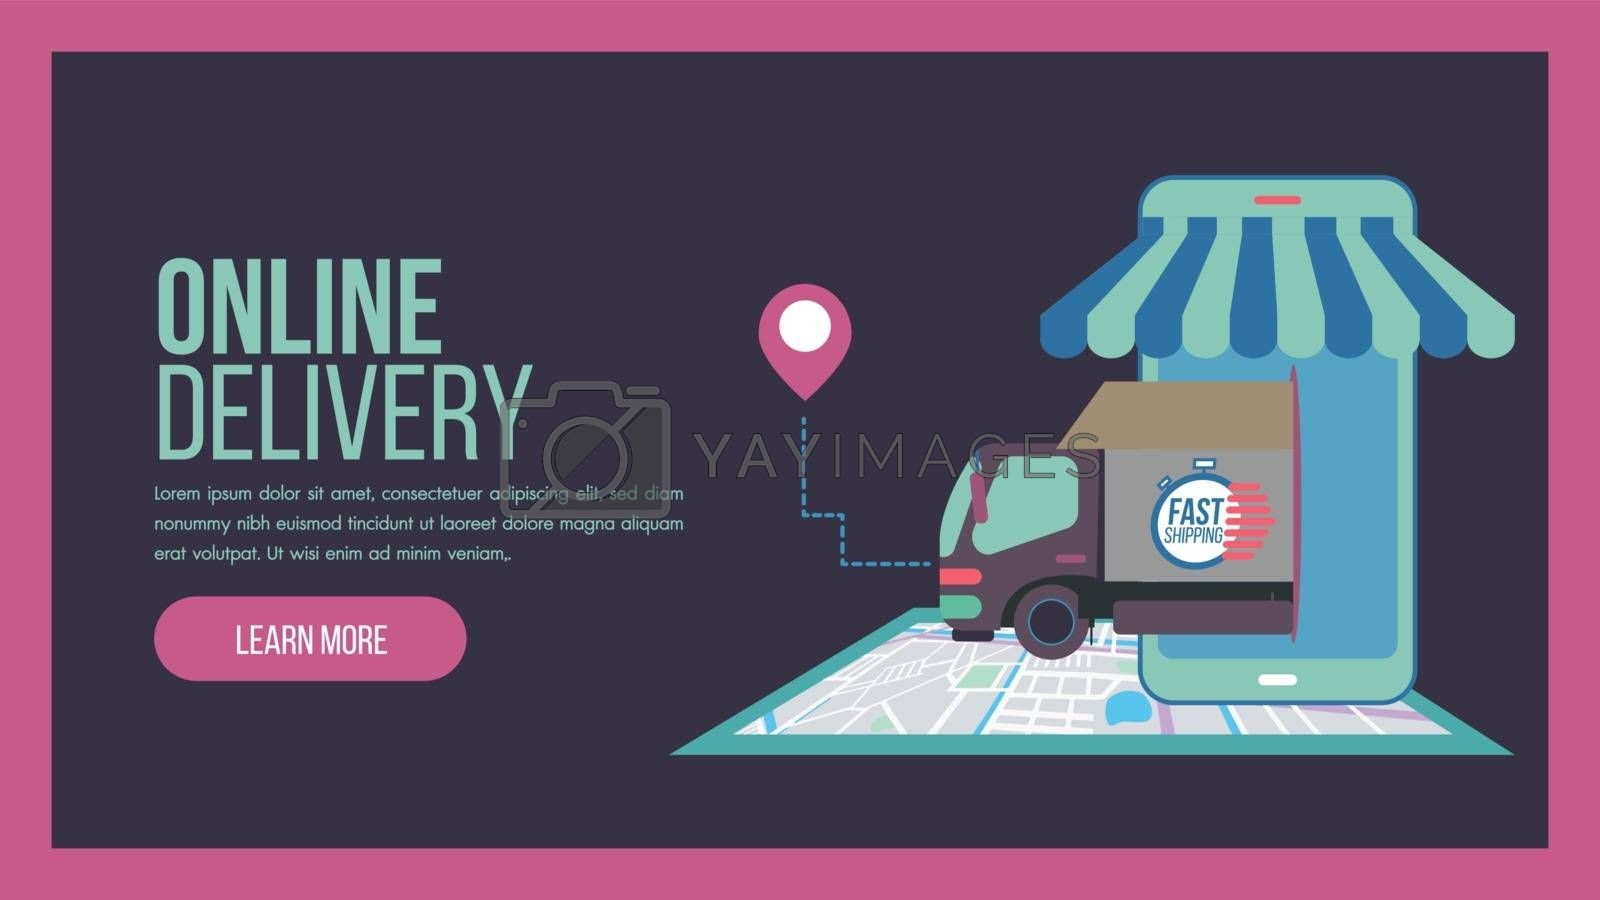 Online delivery service concept landing page with truck by Zeedoherty